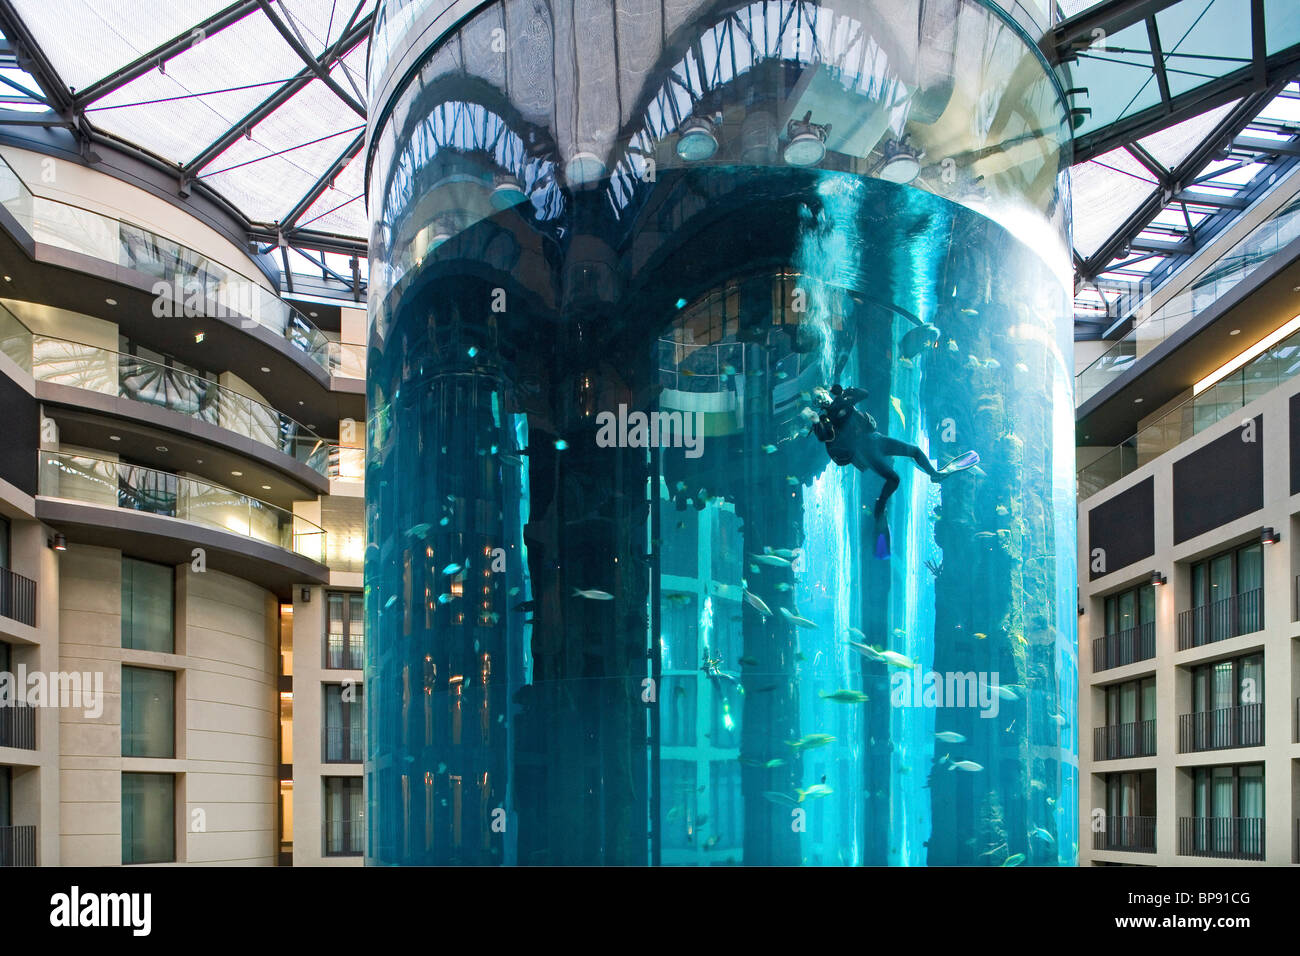 the 5 star Radisson SAS Hotel features the world's largest cylindrical aquarium. entrance to Aqua Dom, a diver - Stock Image